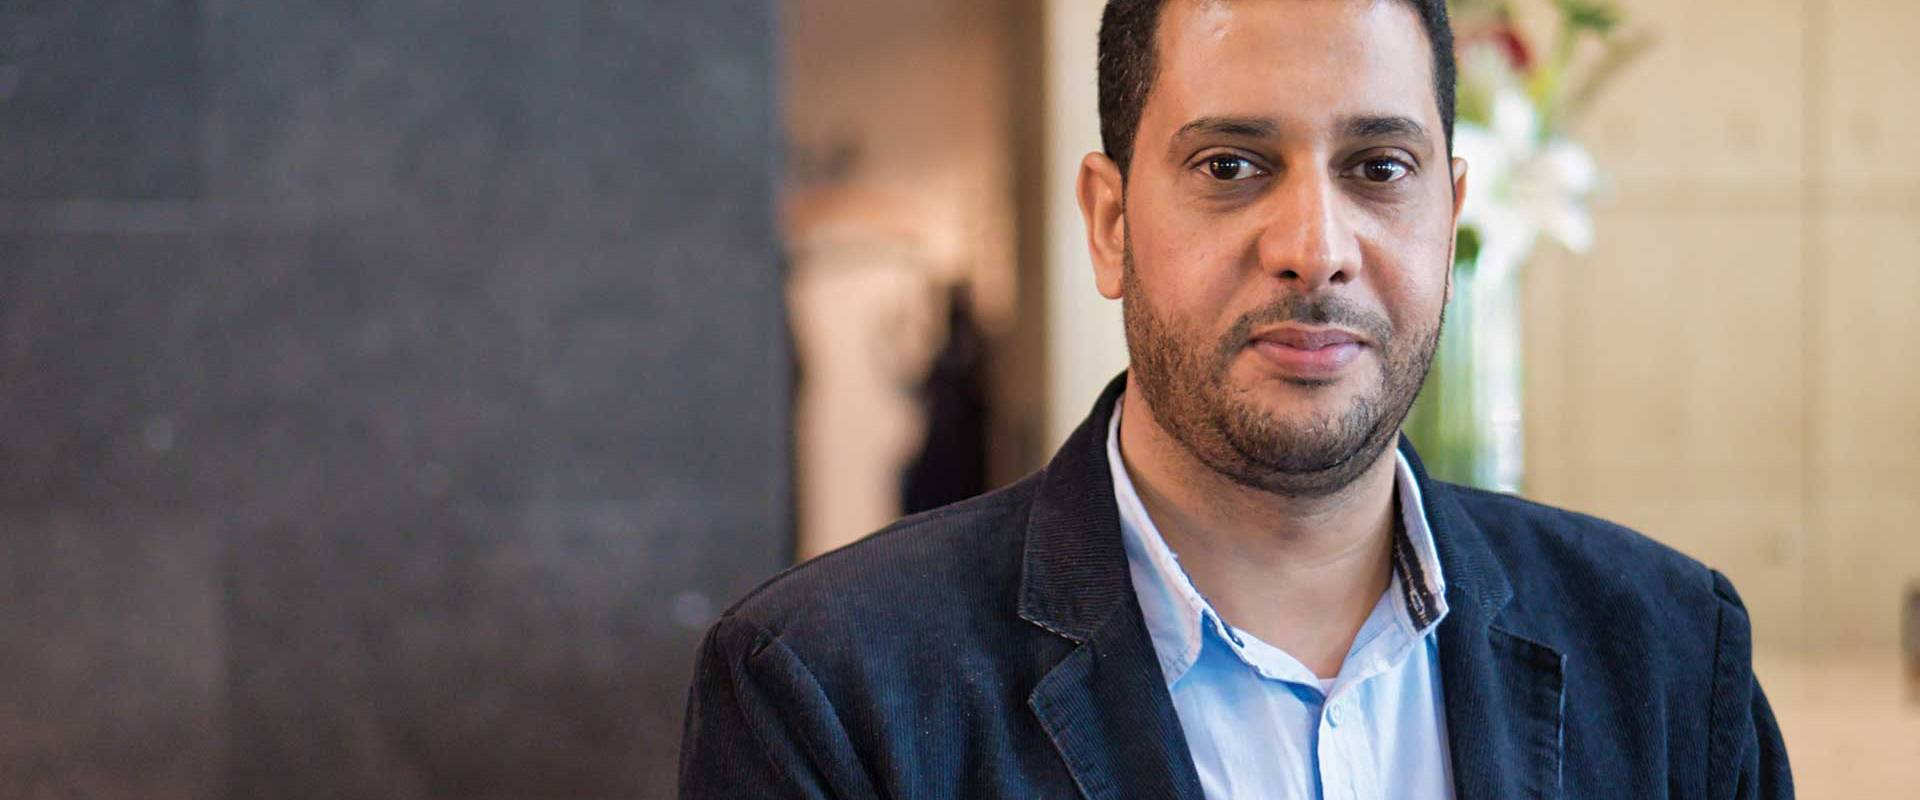 Interview mit Abdelaziz Al-Dhari